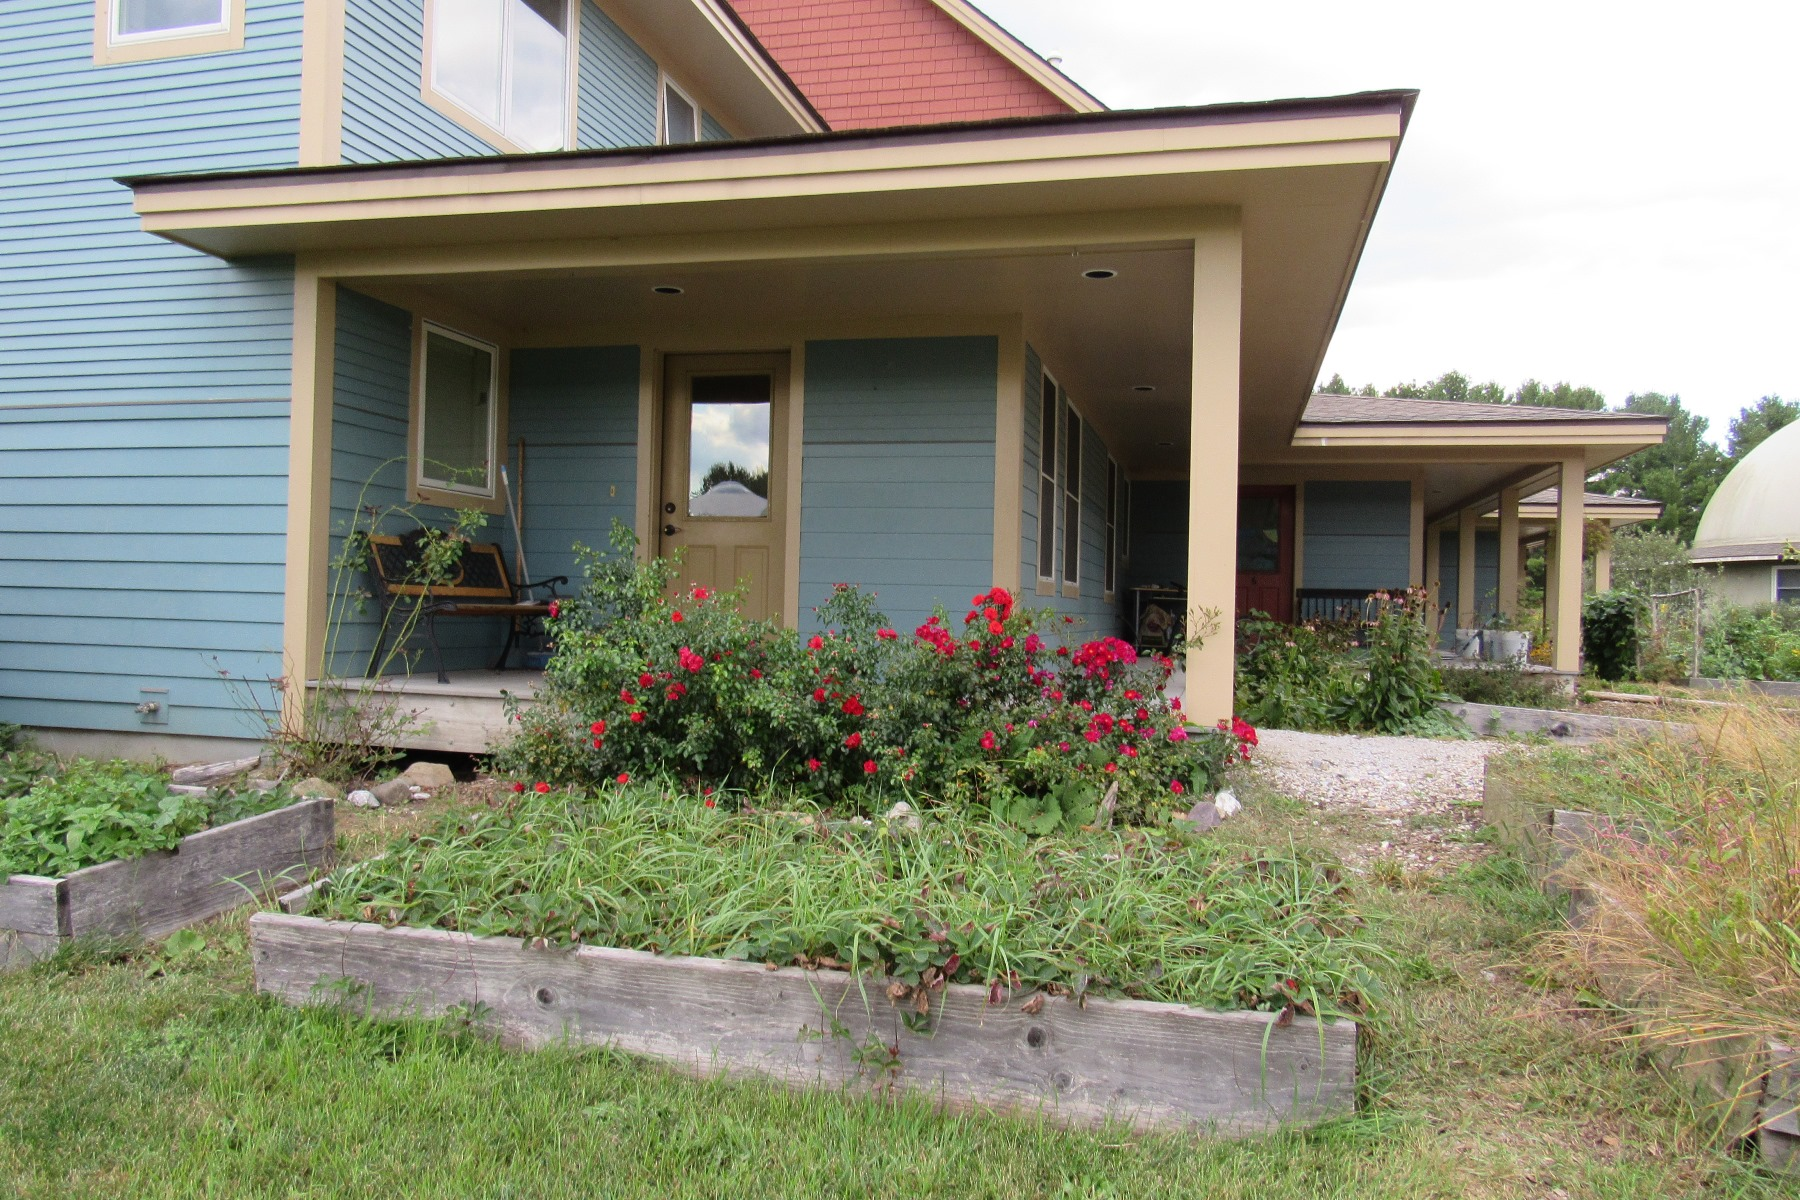 Condominium for Sale at Champlain Valley Co-Housing Townhouse 5 Common Way 5 Charlotte, Vermont, 05445 United States